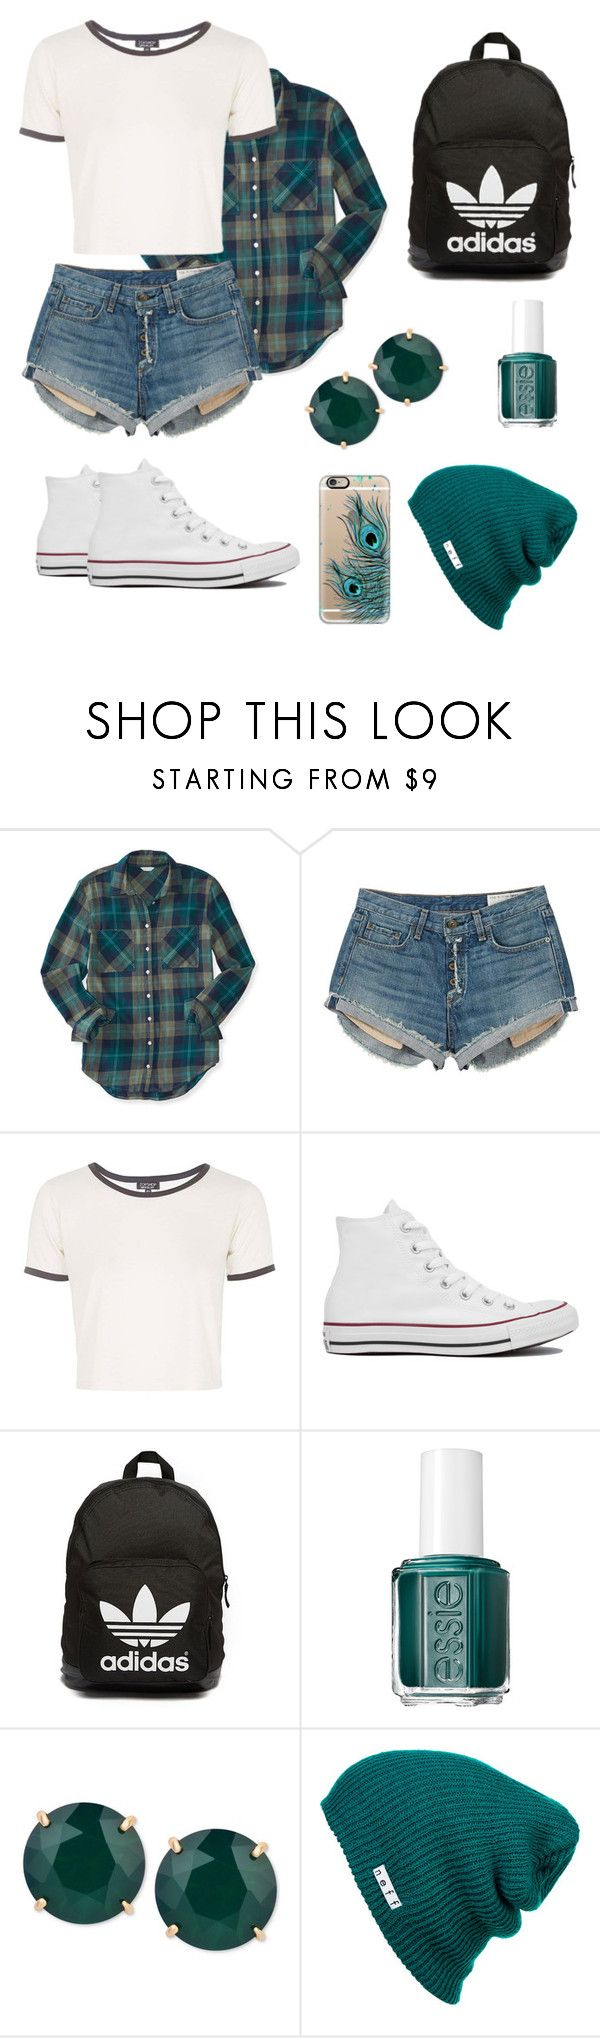 """Untitled #7"" by niki-demar ❤ liked on Polyvore featuring Aéropostale, rag & bone, Topshop, Converse, adidas Originals, Essie, T Tahari, Neff and Casetify"